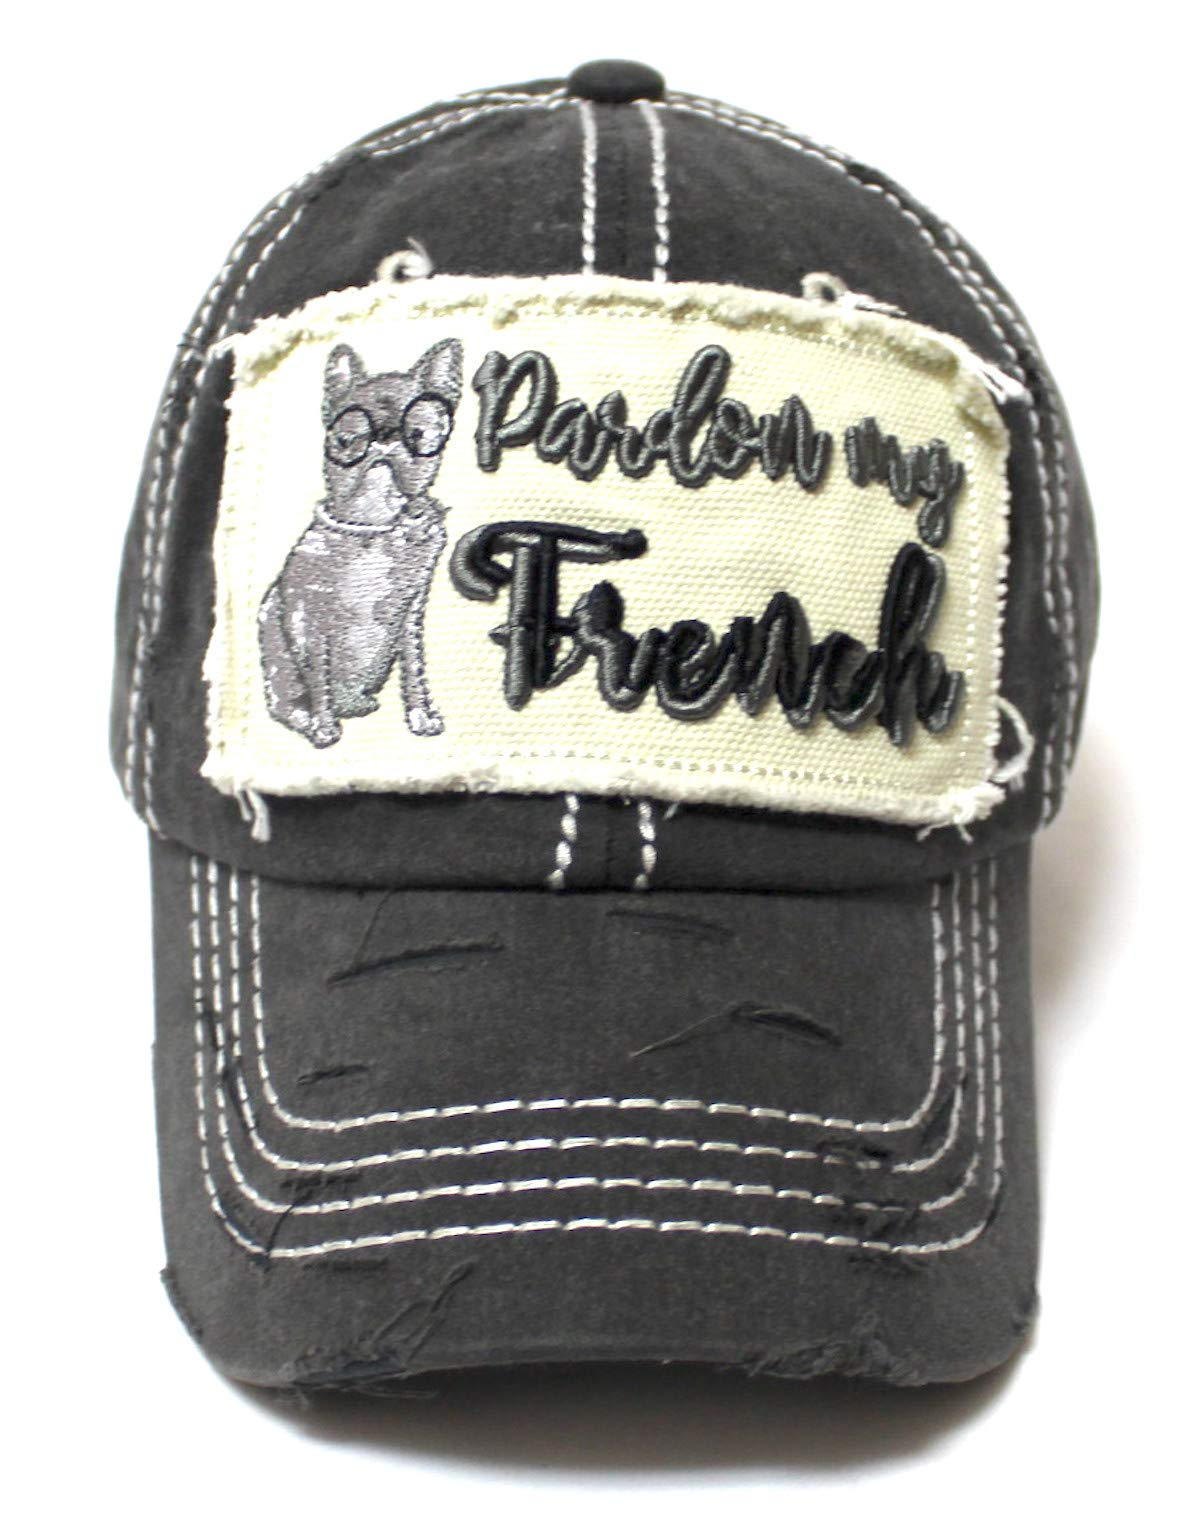 Women's Ballcap Pardon My French French Bulldog Patch Embroidery Monogram Hat, Vintage Black - Caps 'N Vintage